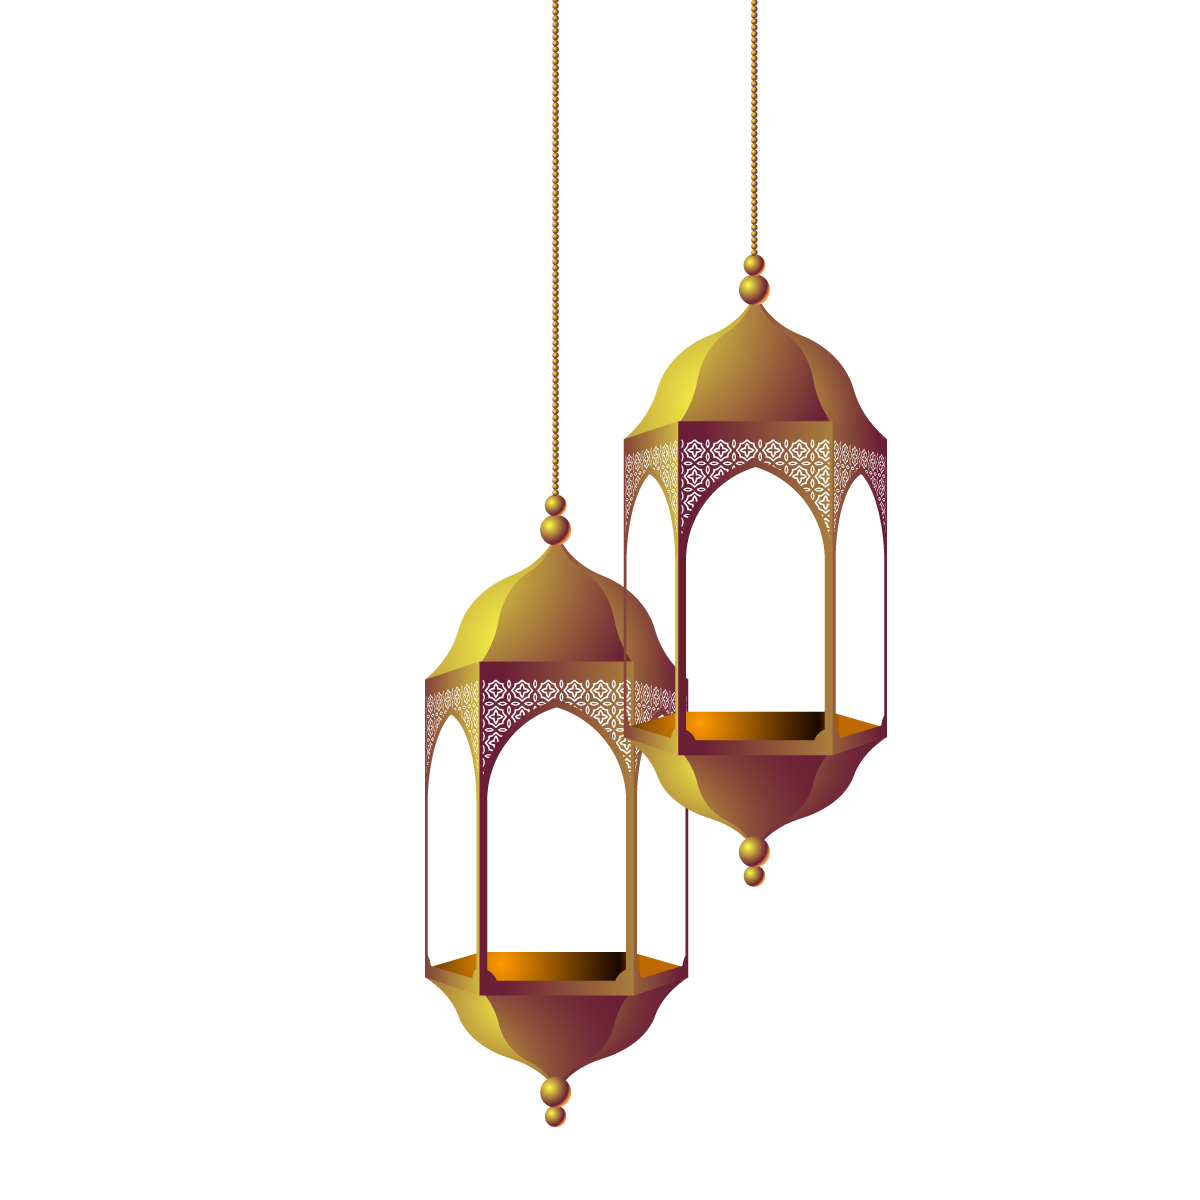 Chandelier vector png free. Quran ayah euclidean hollow